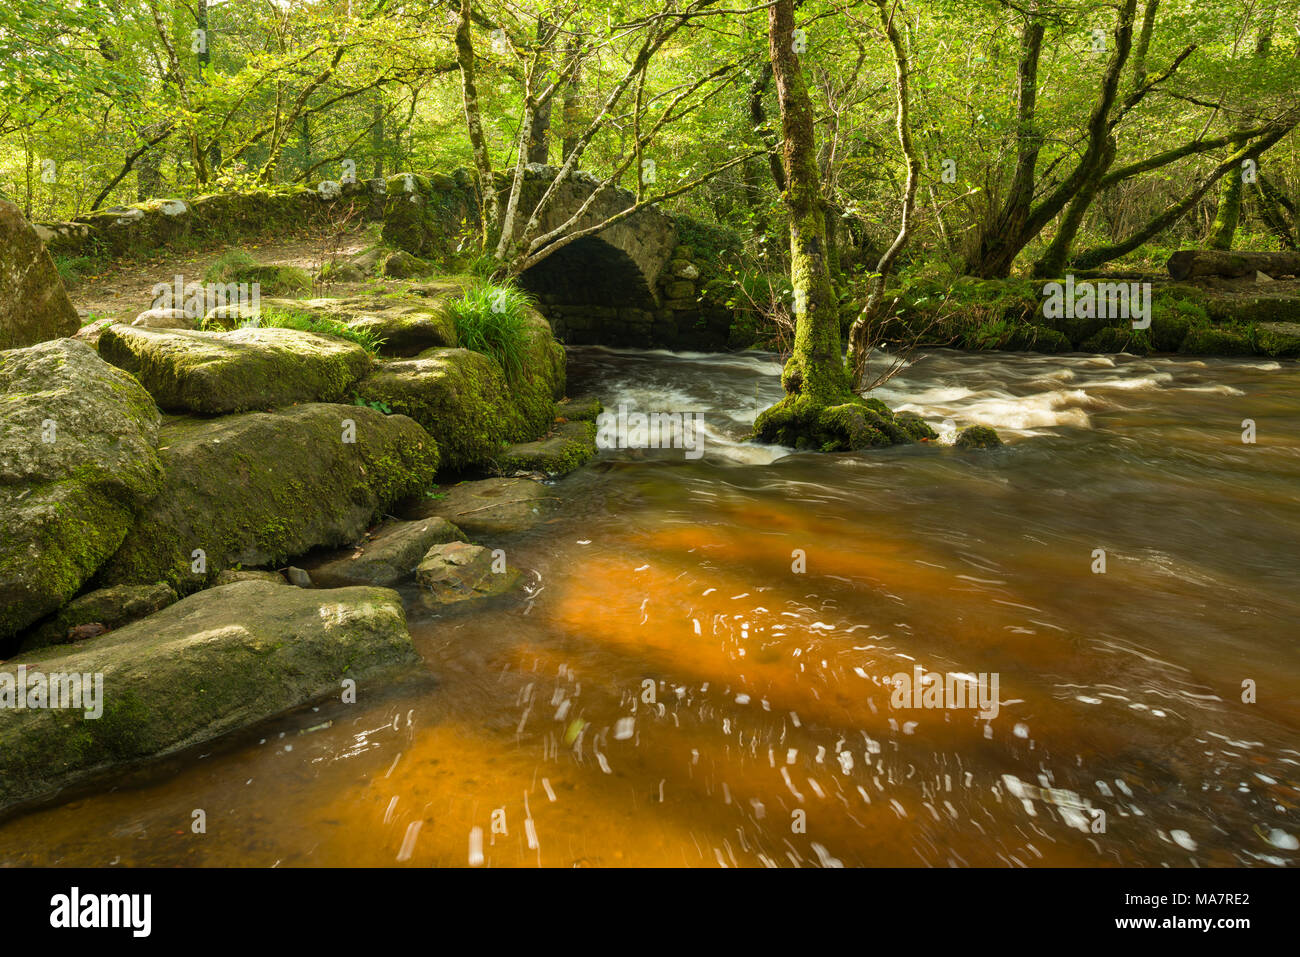 Hisley Bridge over the River Bovey in Dartmoor National park near Lustleigh, Devon, England. - Stock Image